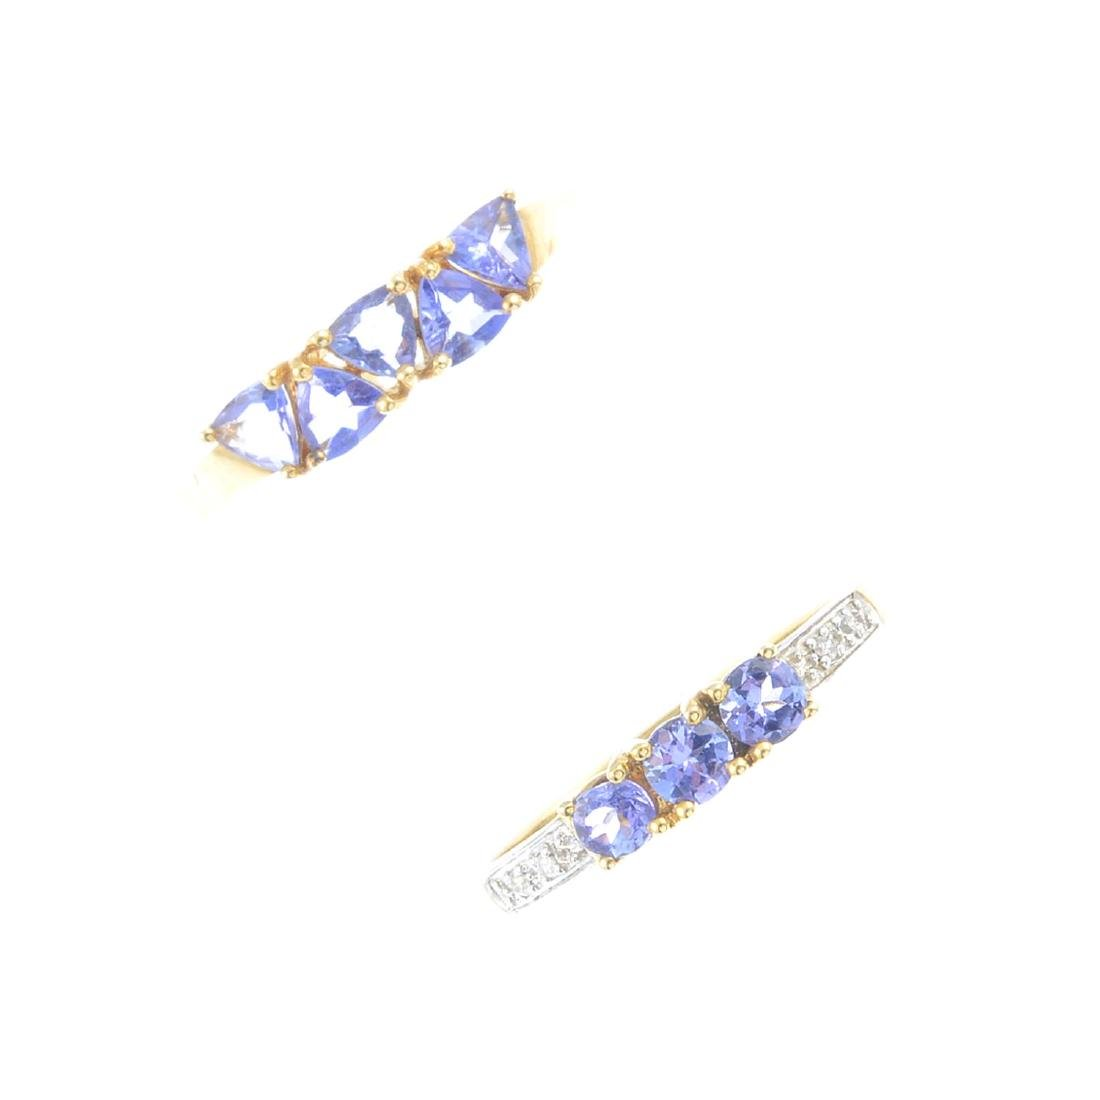 Two 9ct gold tanzanite and diamond rings. To include a